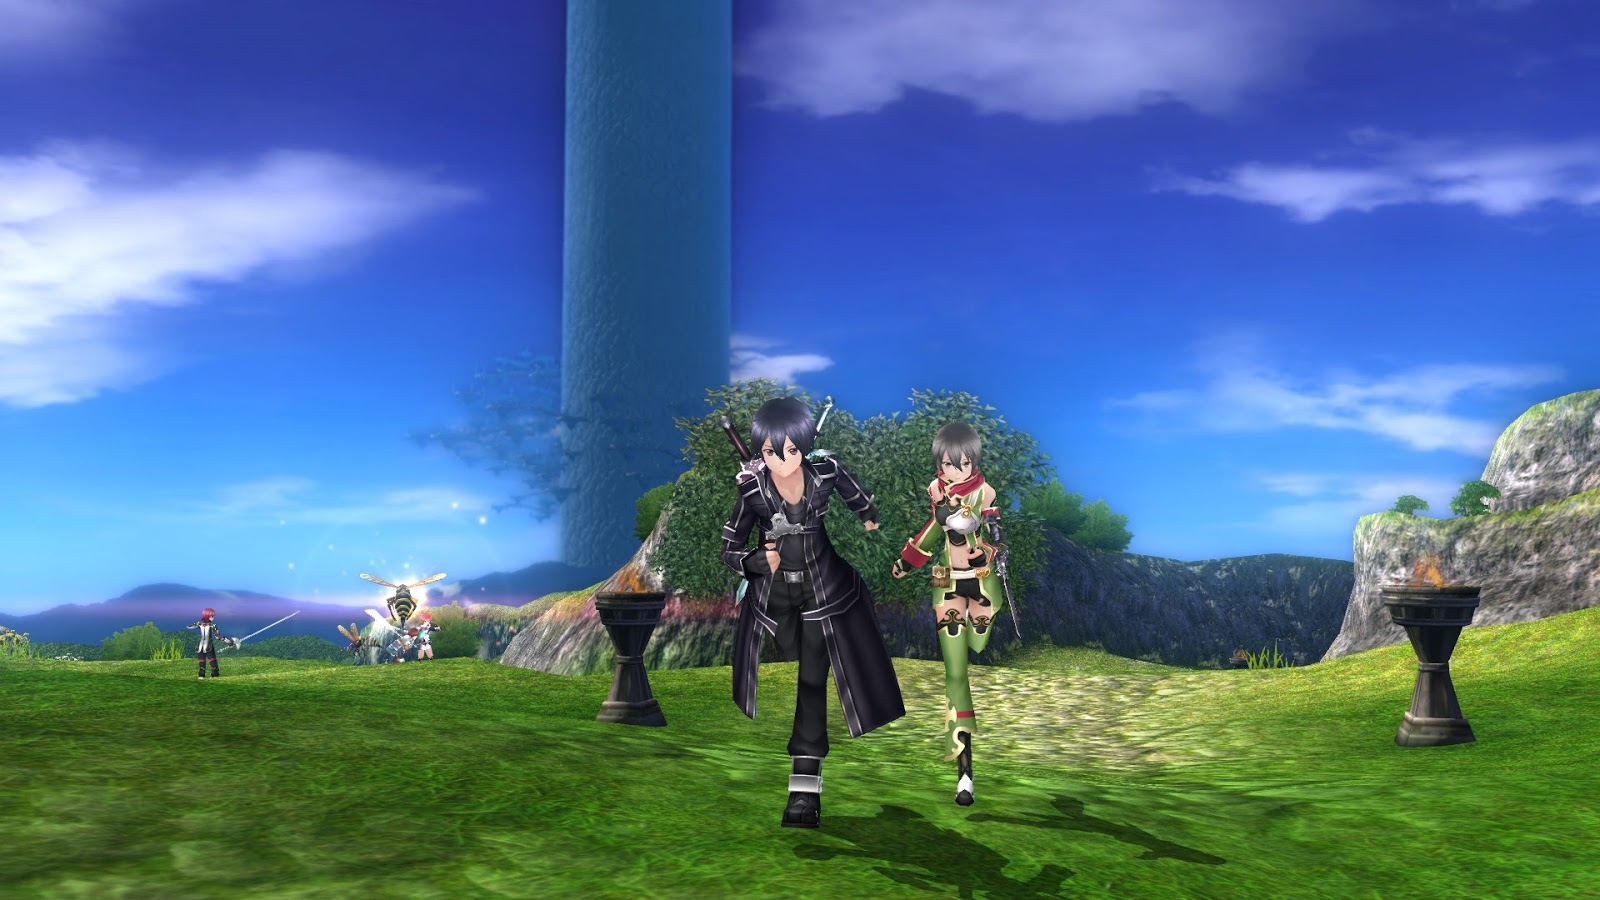 Sword Art Online RE: Hollow Fragment - PS4 Review | Chalgyr's Game Room